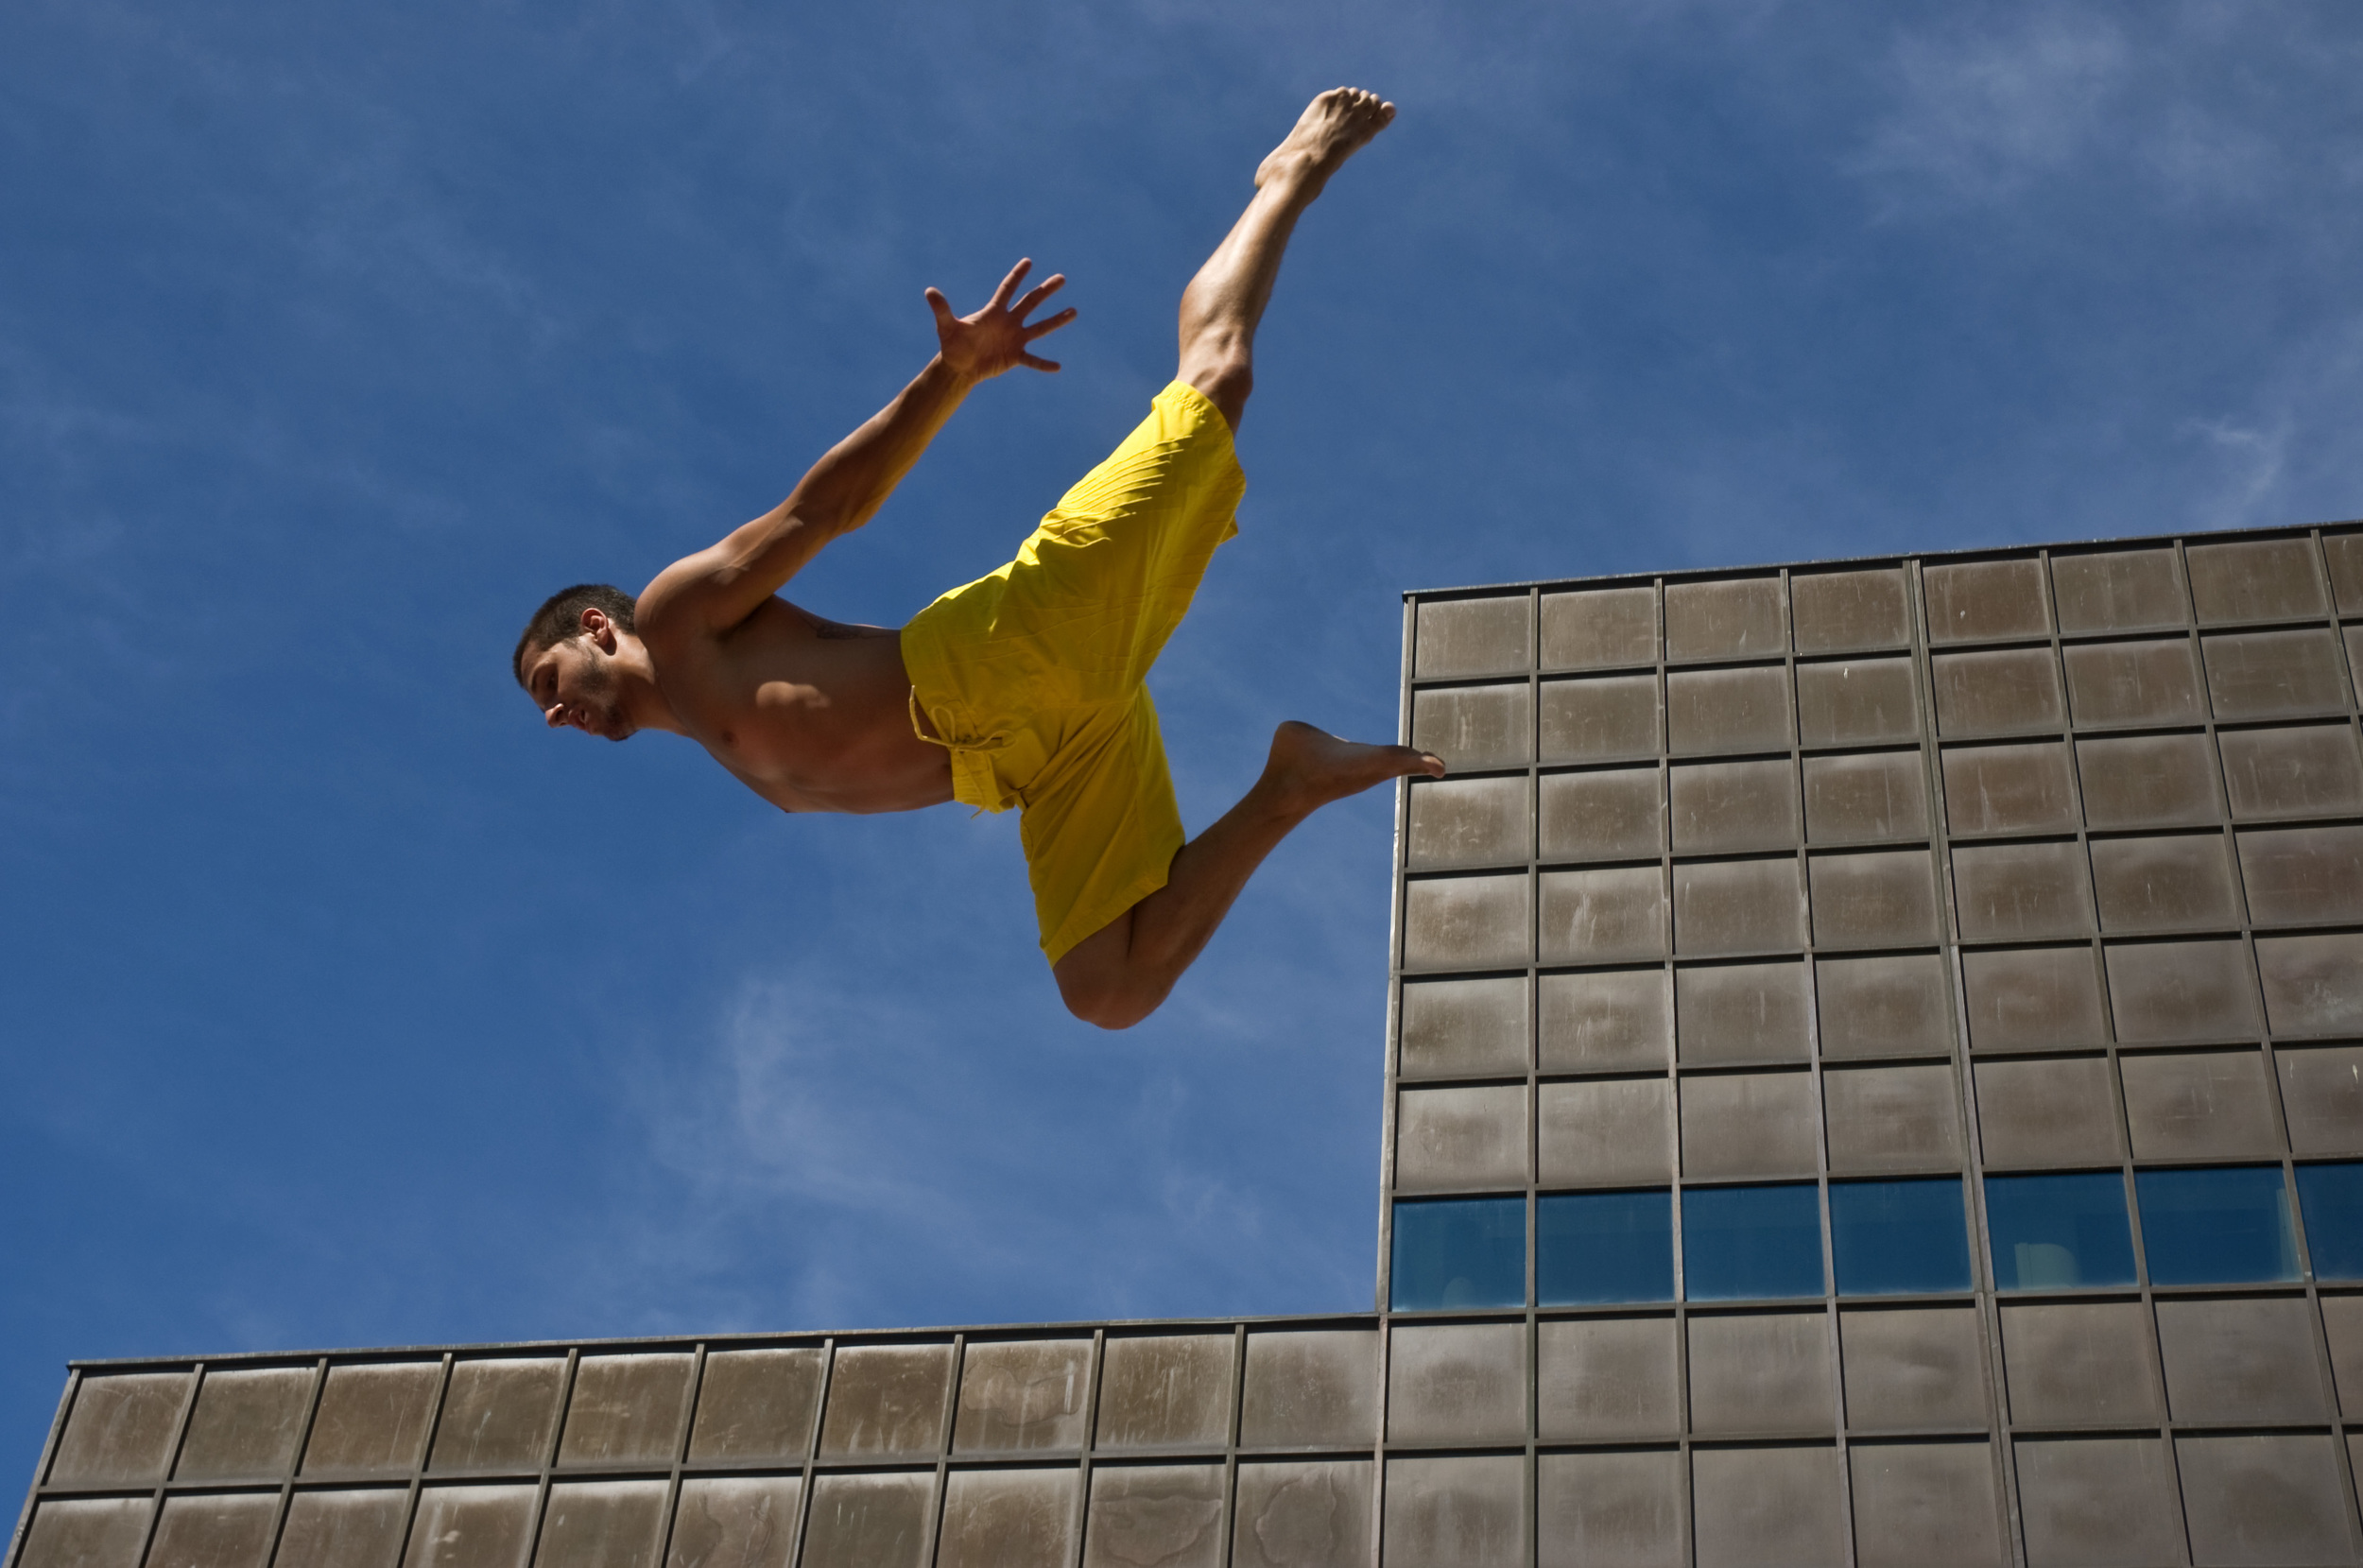 An aerial performer practices on a trampoline before the start of the Francofolies, a huge street celebration of French Canadian culture in Montreal, Quebec.